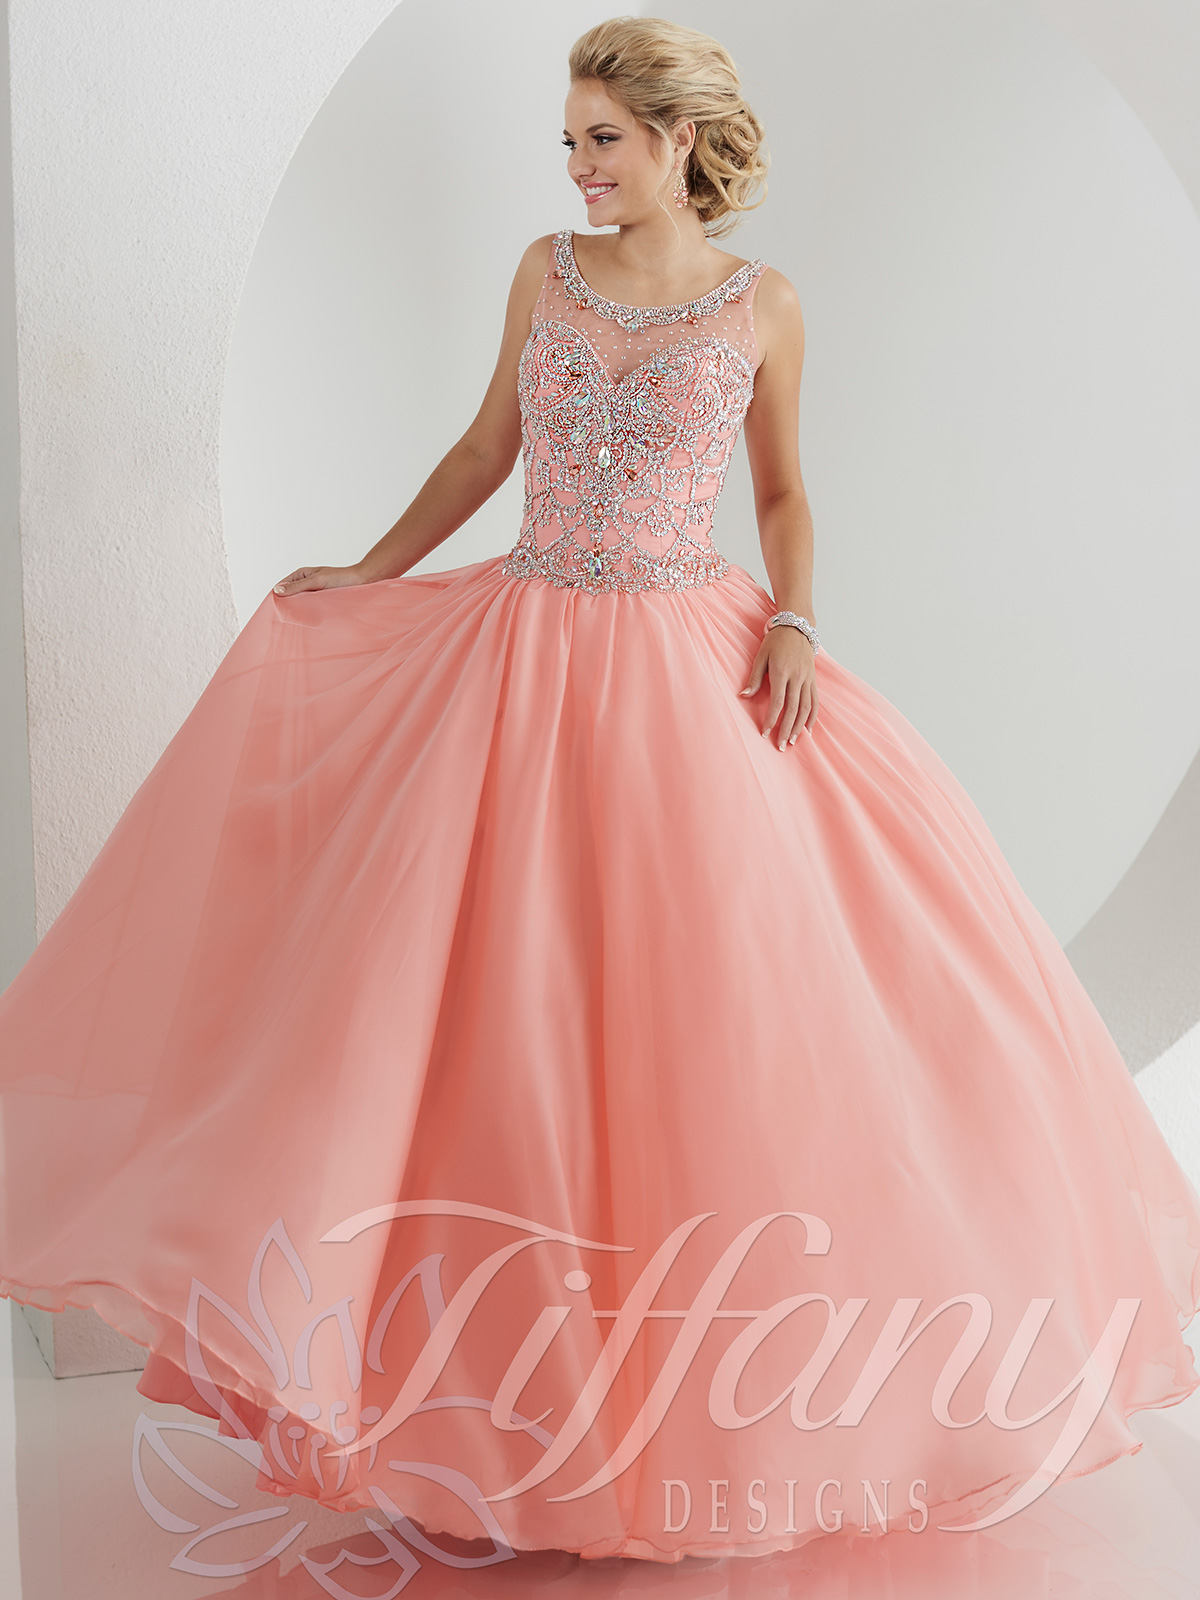 Tiffany Designs Ball Gown Dresses | DressProm.net